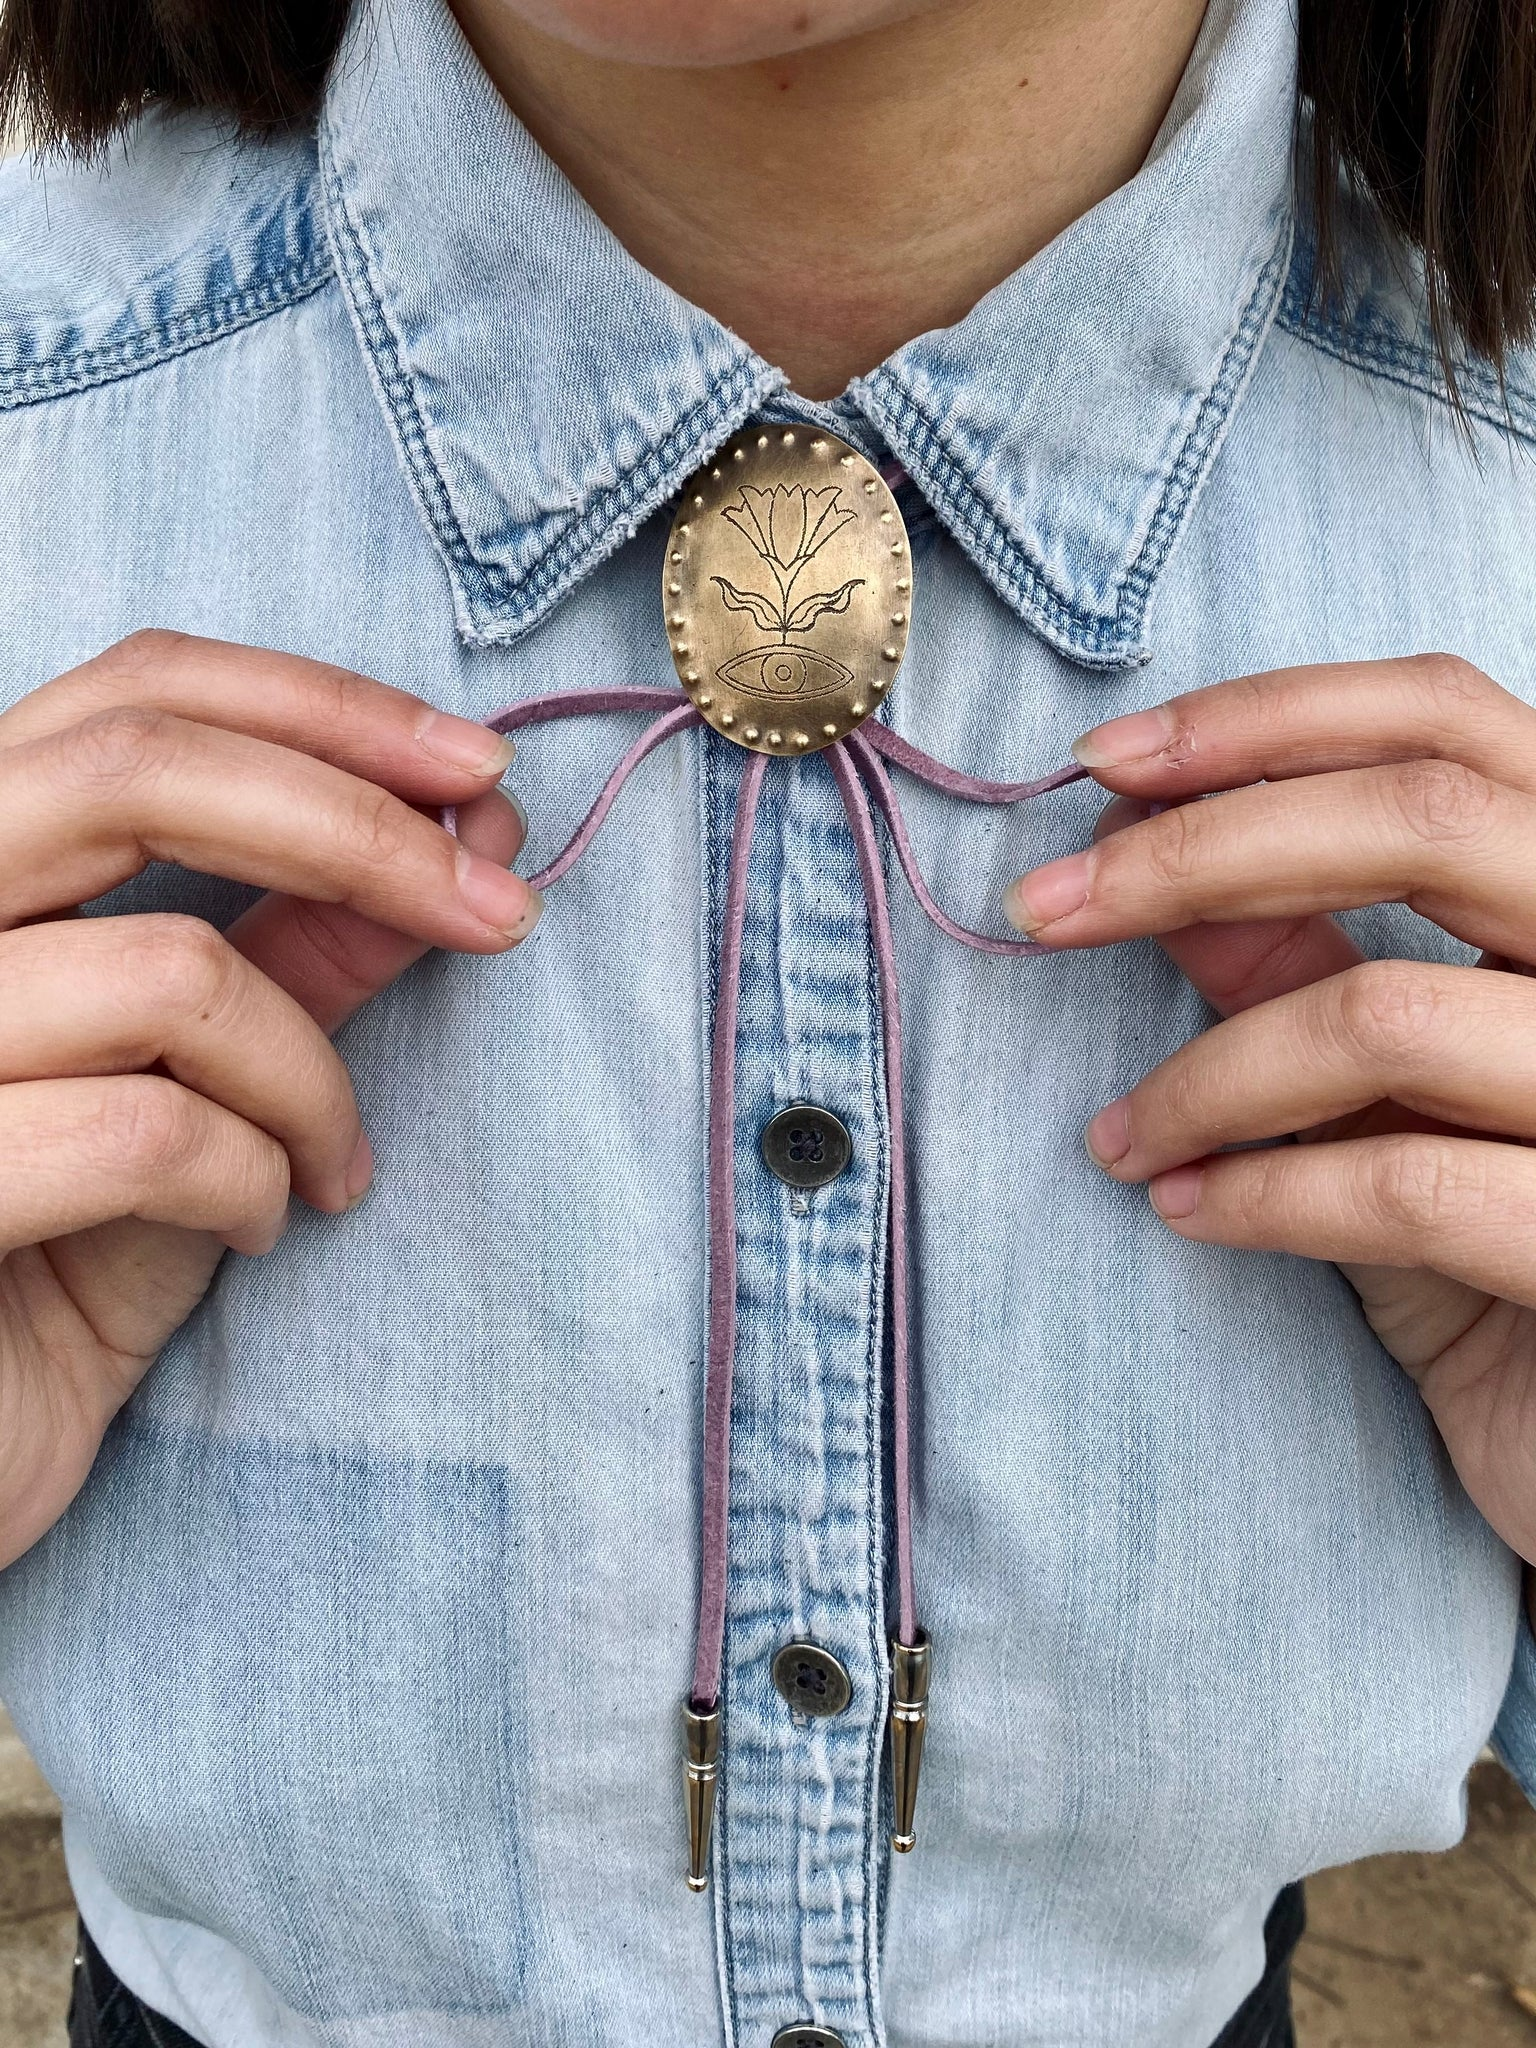 Claire Sommers Buck x Fort Lonesome DREAMLAND Bolo Tie